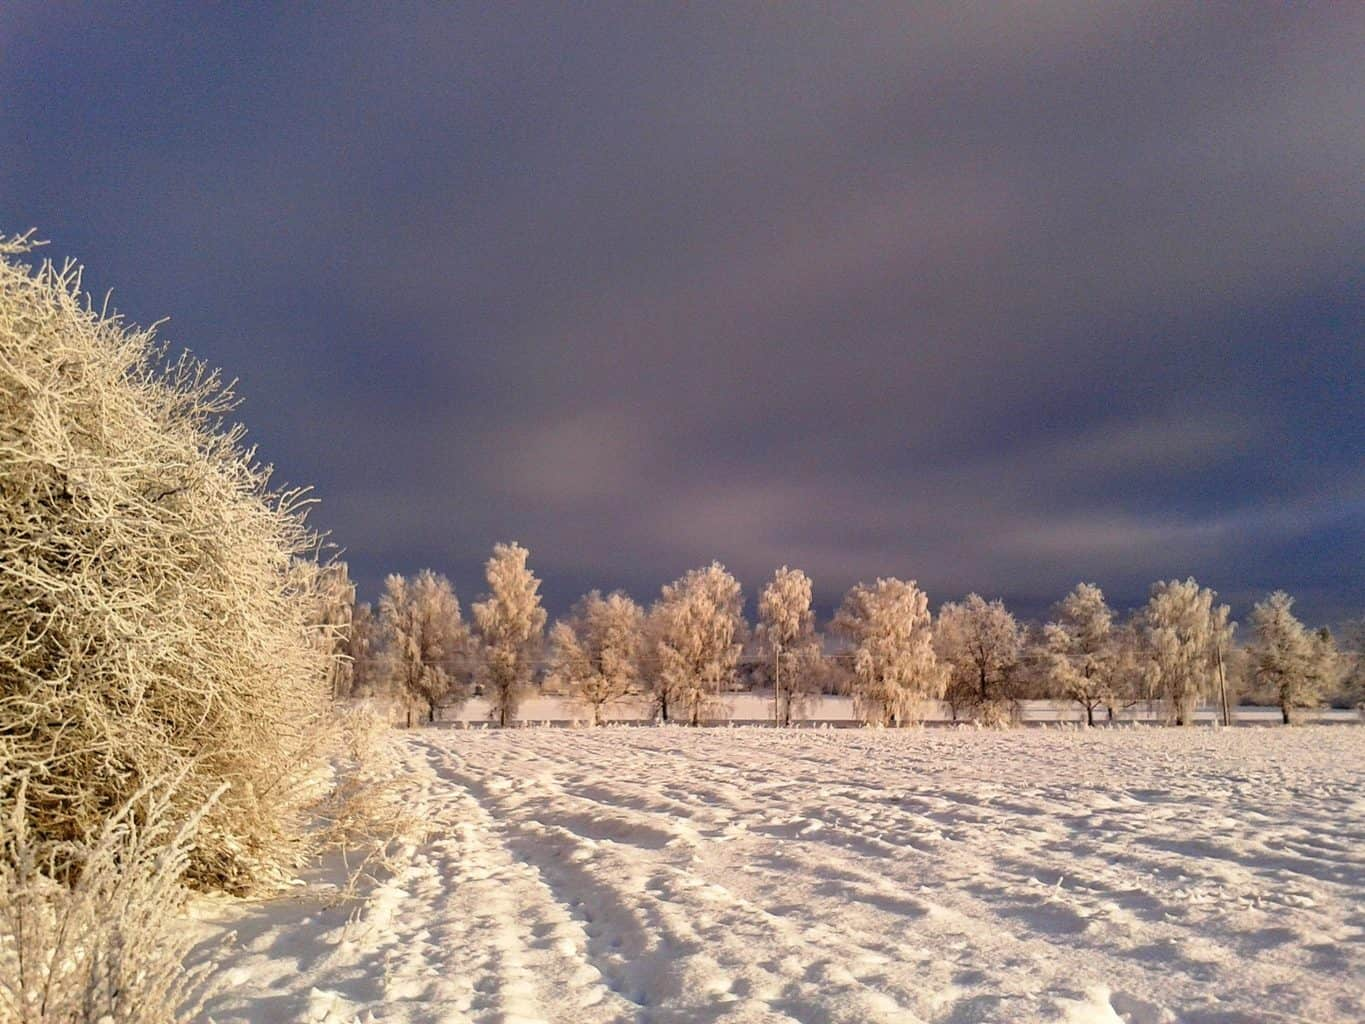 Today's weather in Latvia: Cold with beautiful hard rime and snow in trees What a beautiful day